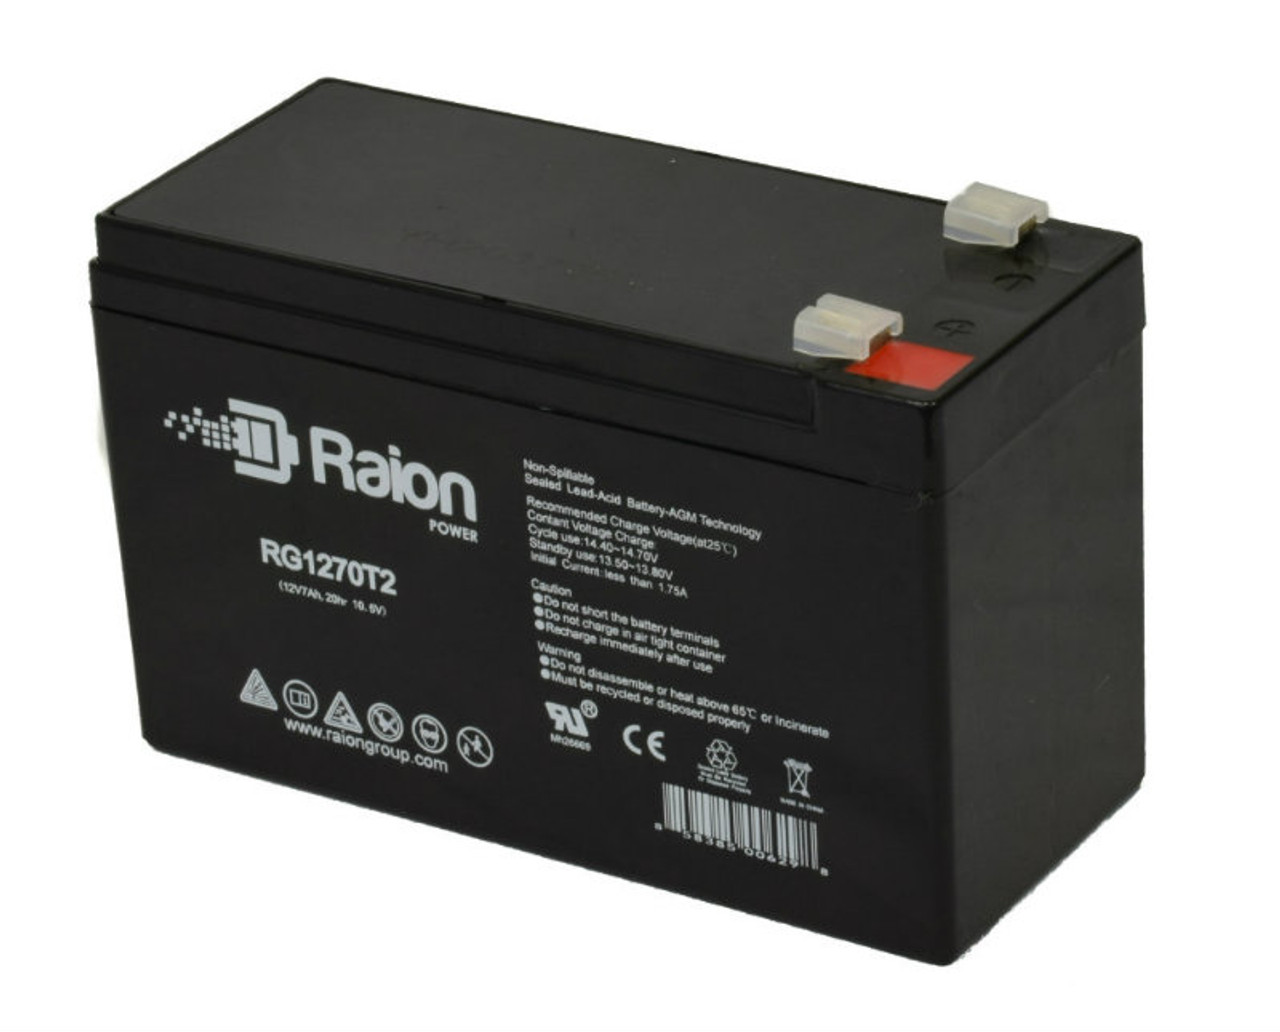 Raion Power 12V 7Ah SLA Battery With T1 Terminals For ExpertPower EXP1272